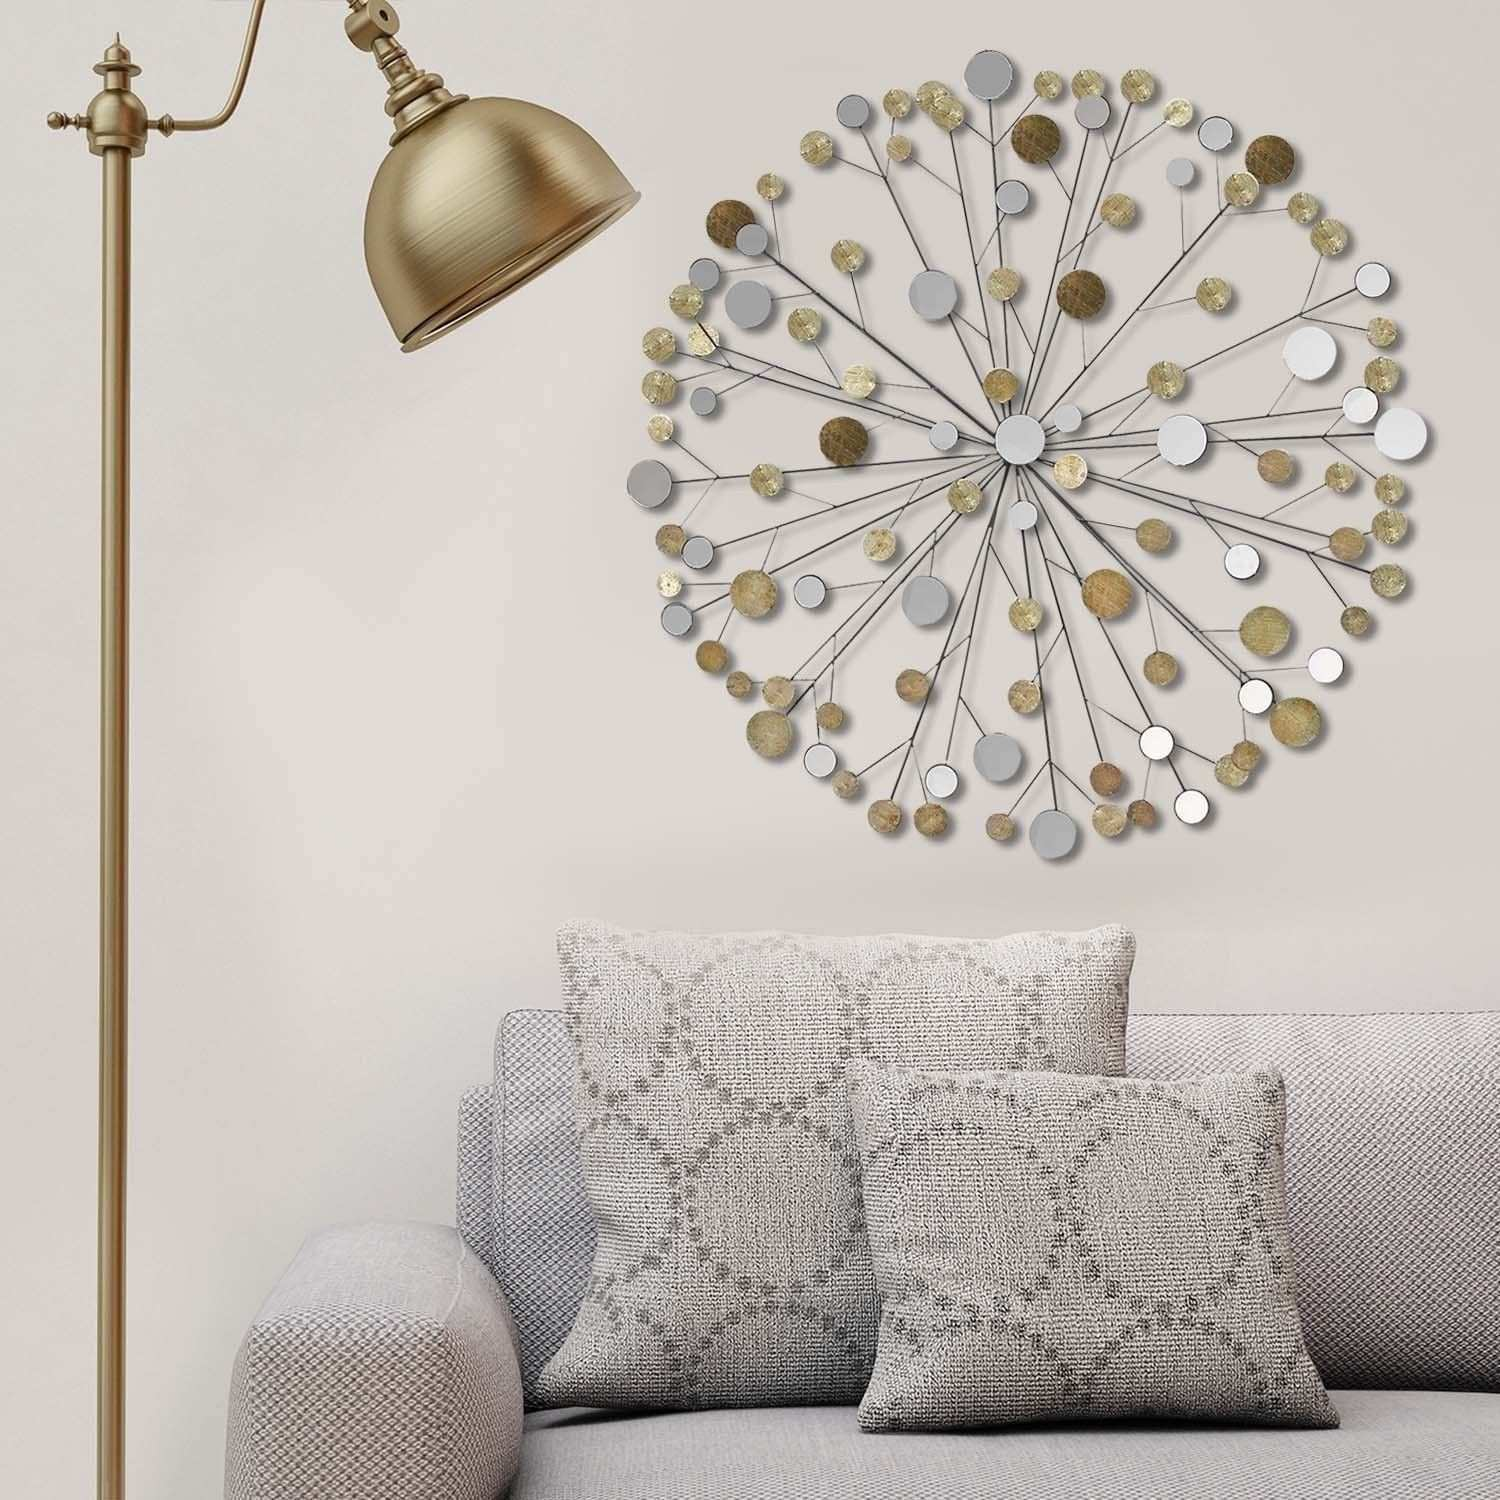 Stratton Home Decor Metallic Starburst Wall Decor Metallic Starbust